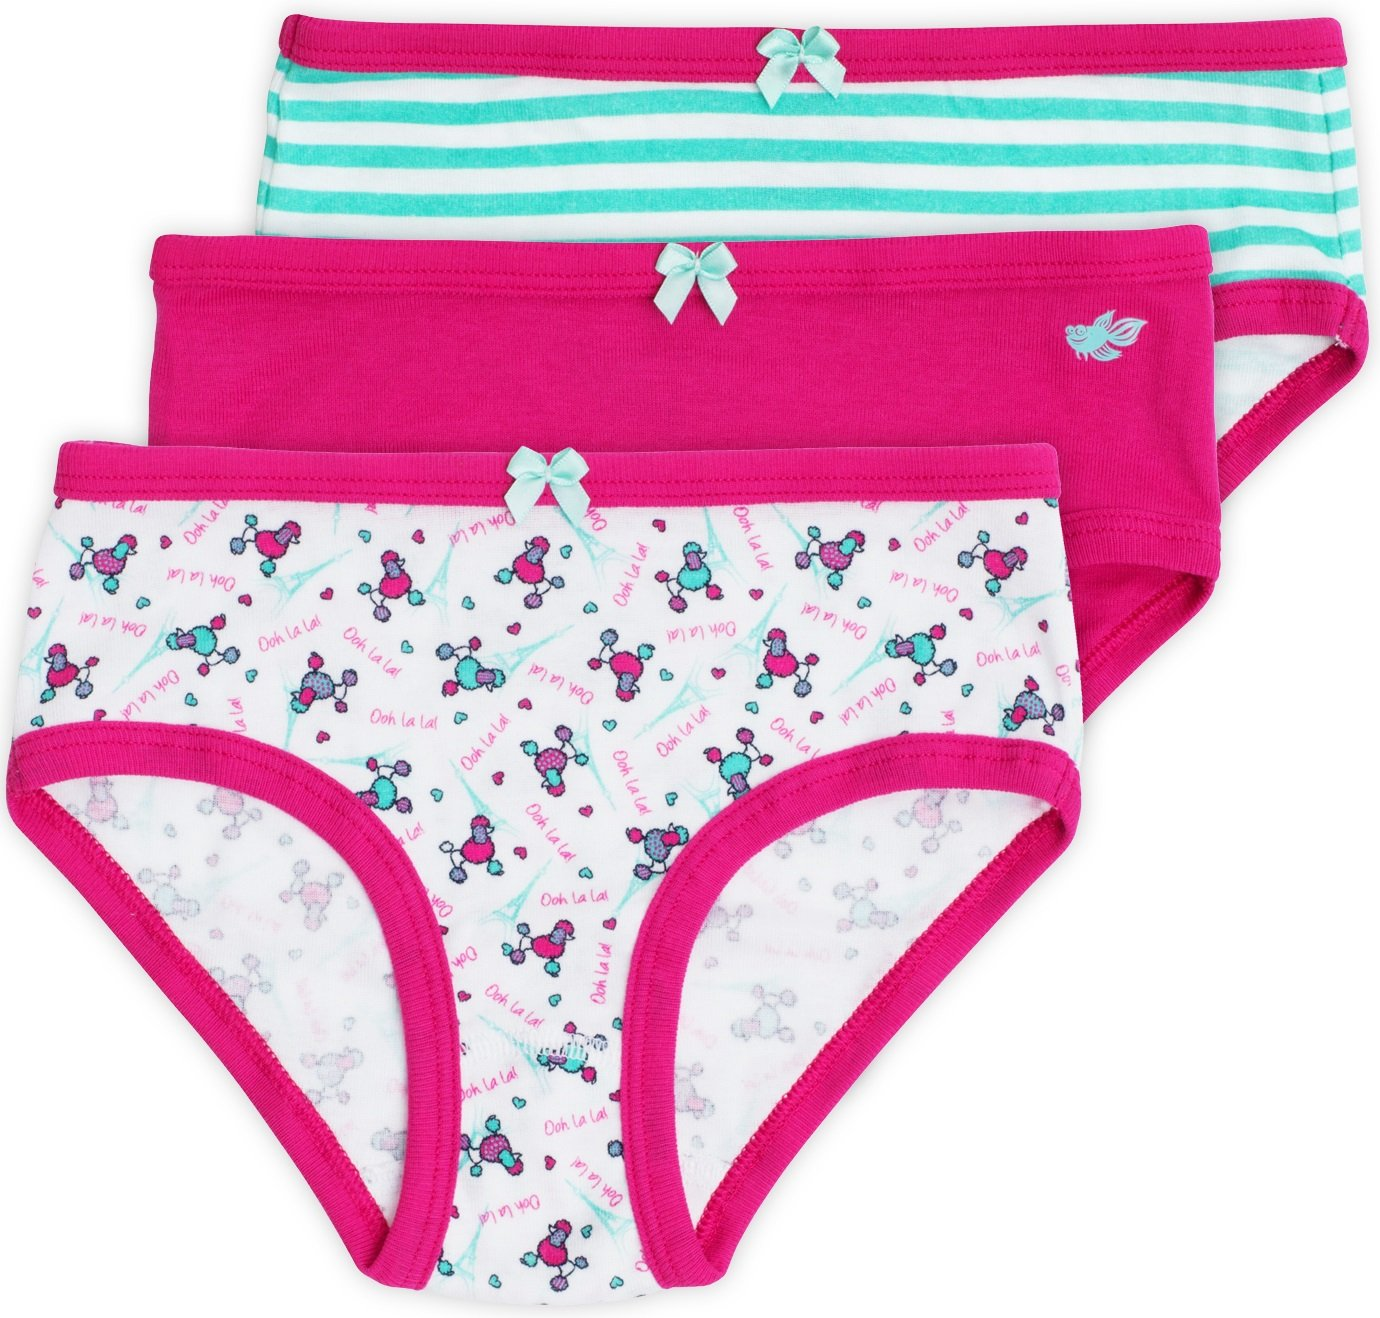 Katie Girls Briefs, 100% Cotton, Everyday Collection, 3-Pack, Poodle Print, 9/10